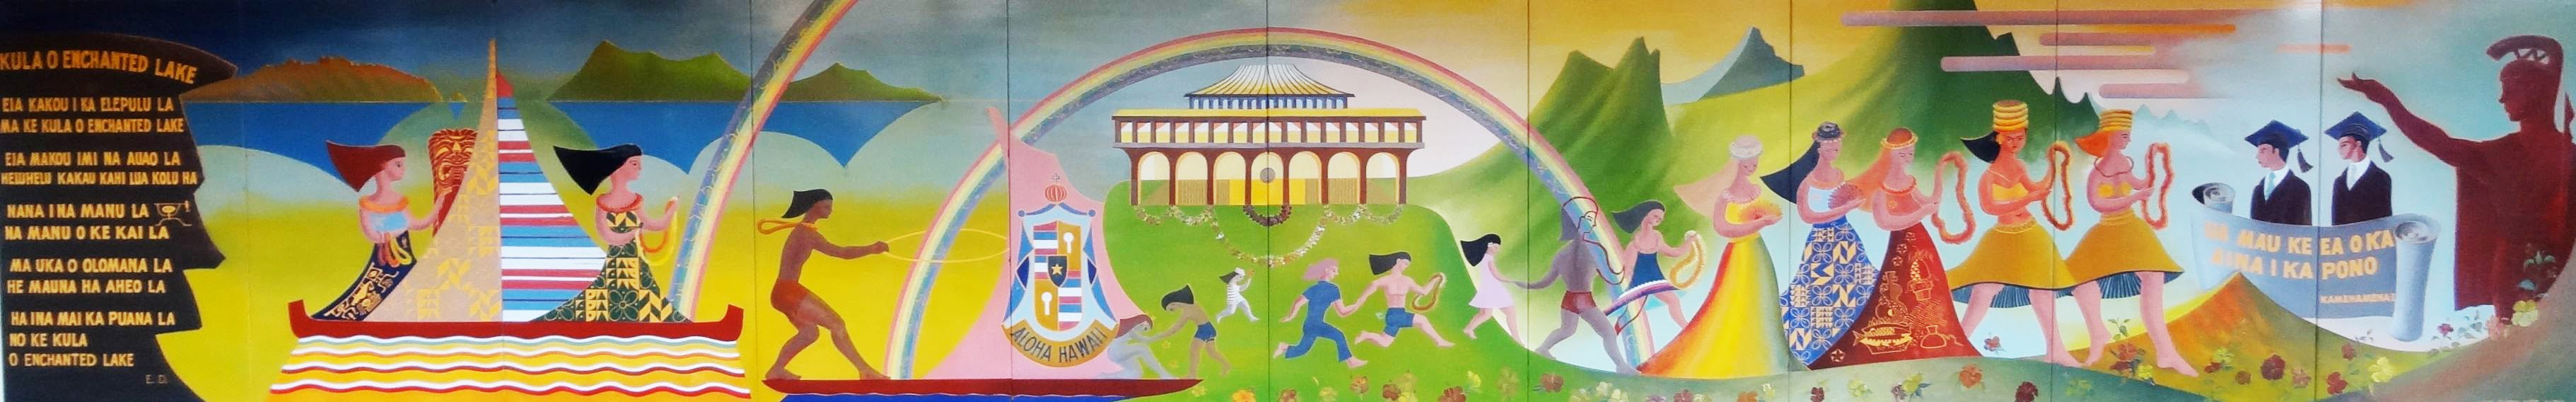 Mural Painted on a wall at ELES